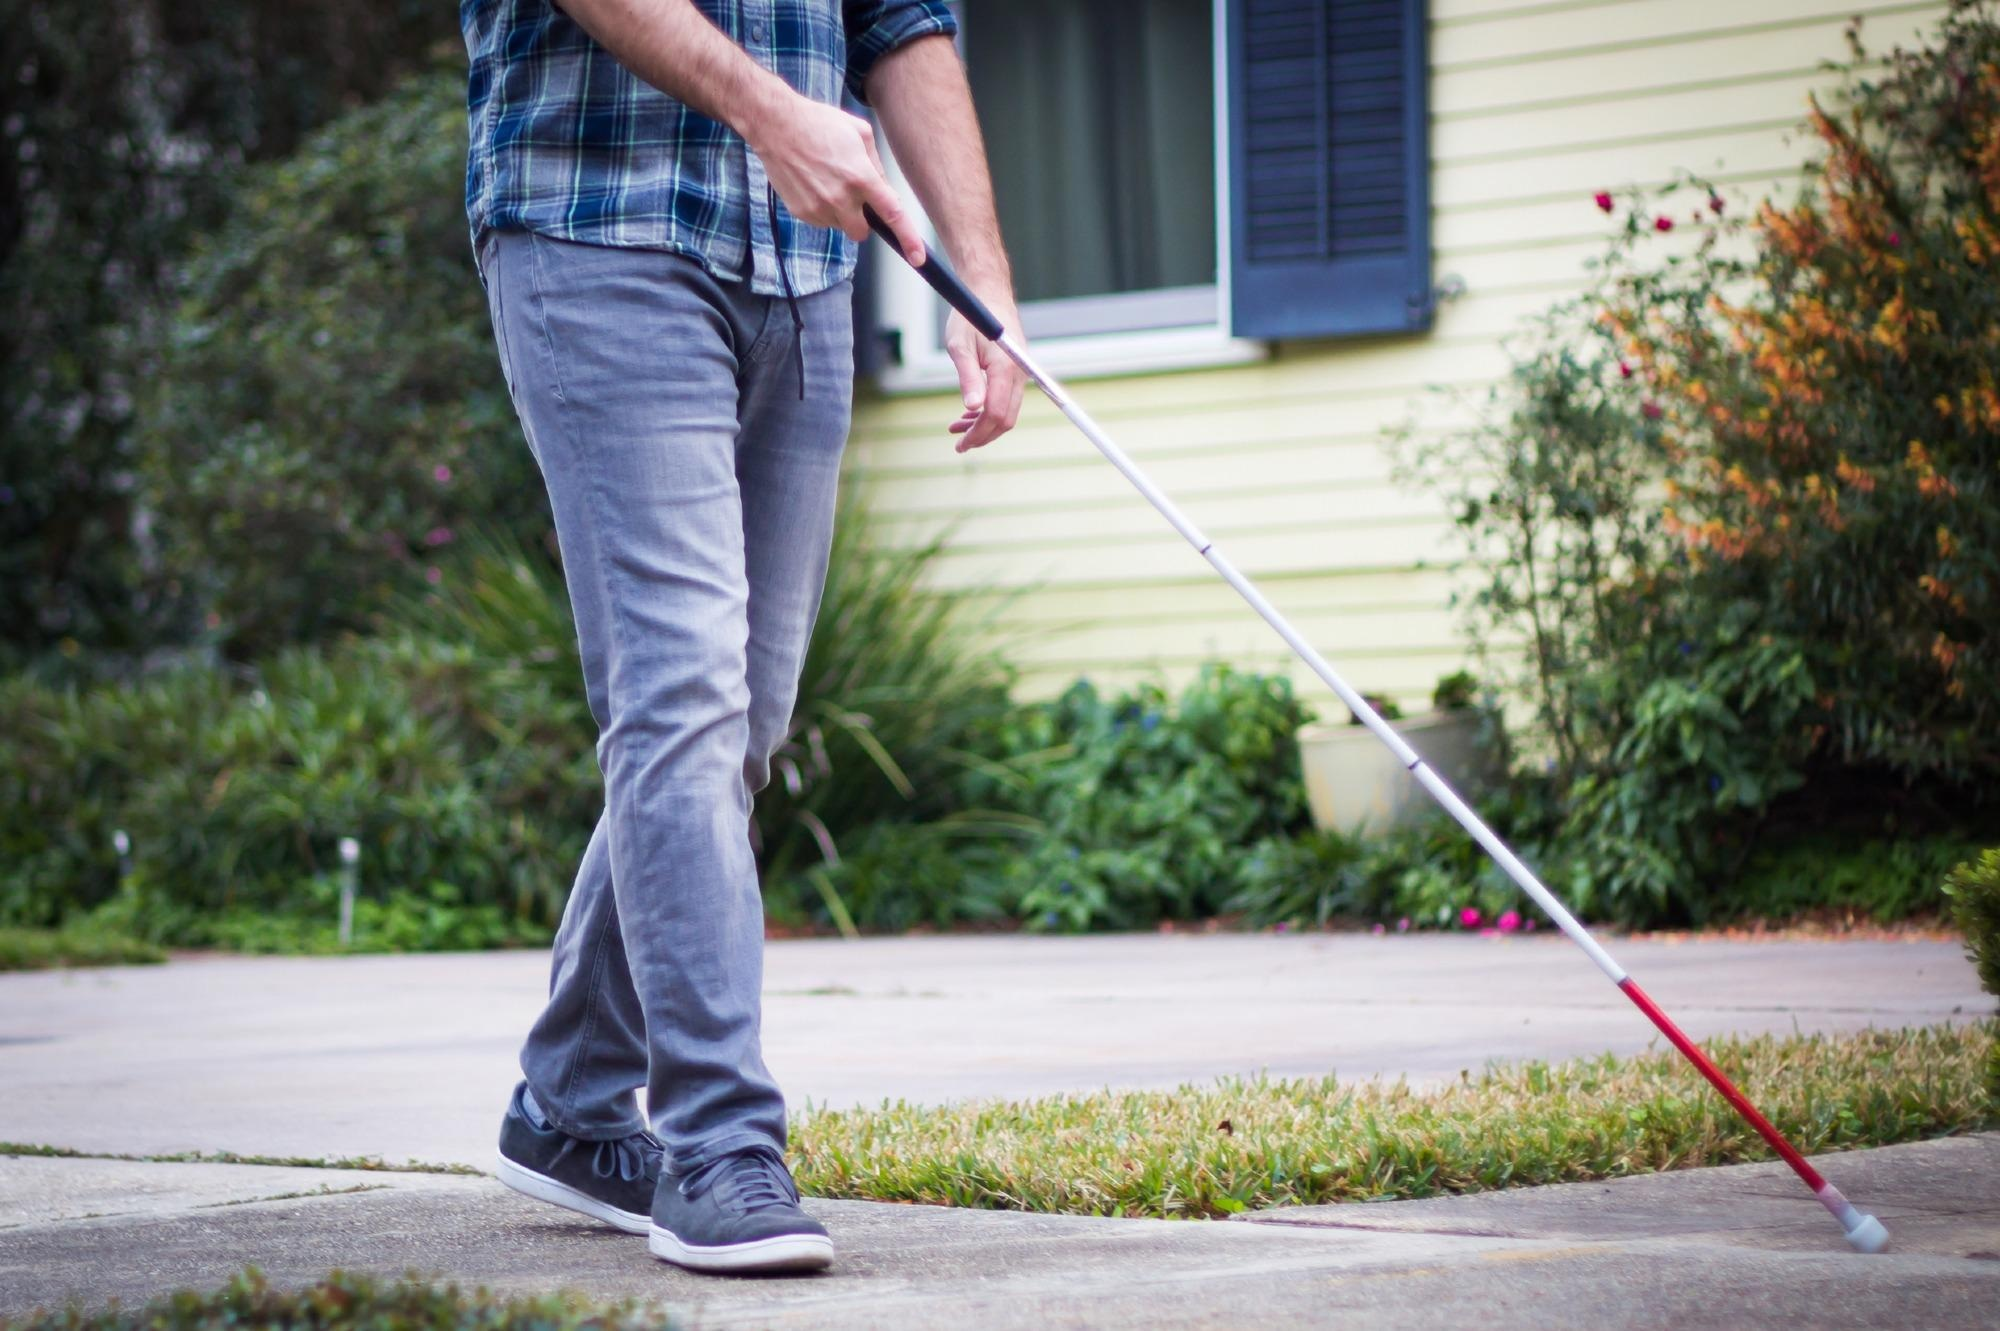 Robotic Navigation Cane with 3D Camera Helps Visually Impaired.